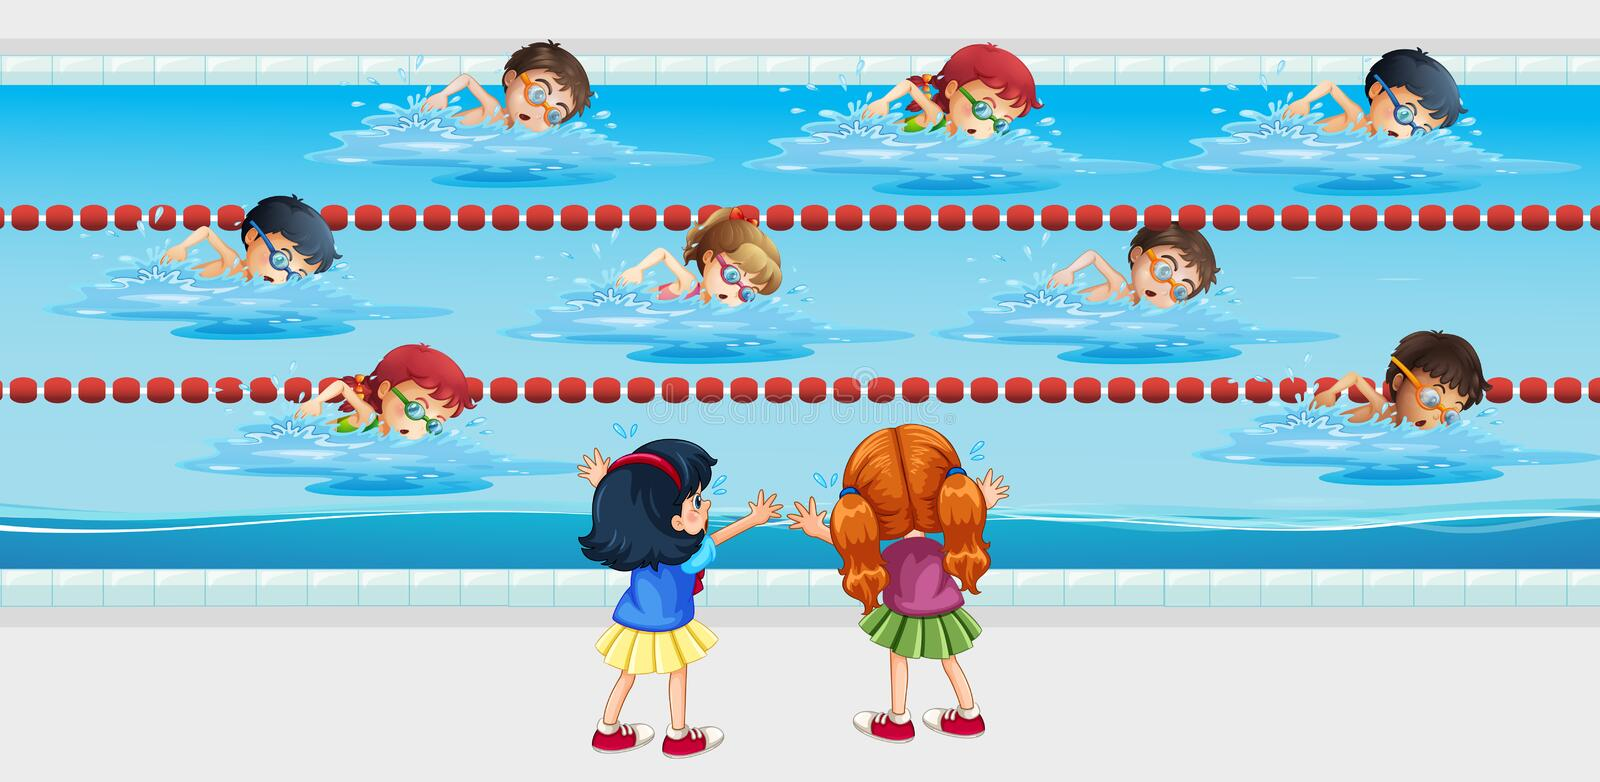 Kids practice swimming in the pool. Illustration royalty free illustration